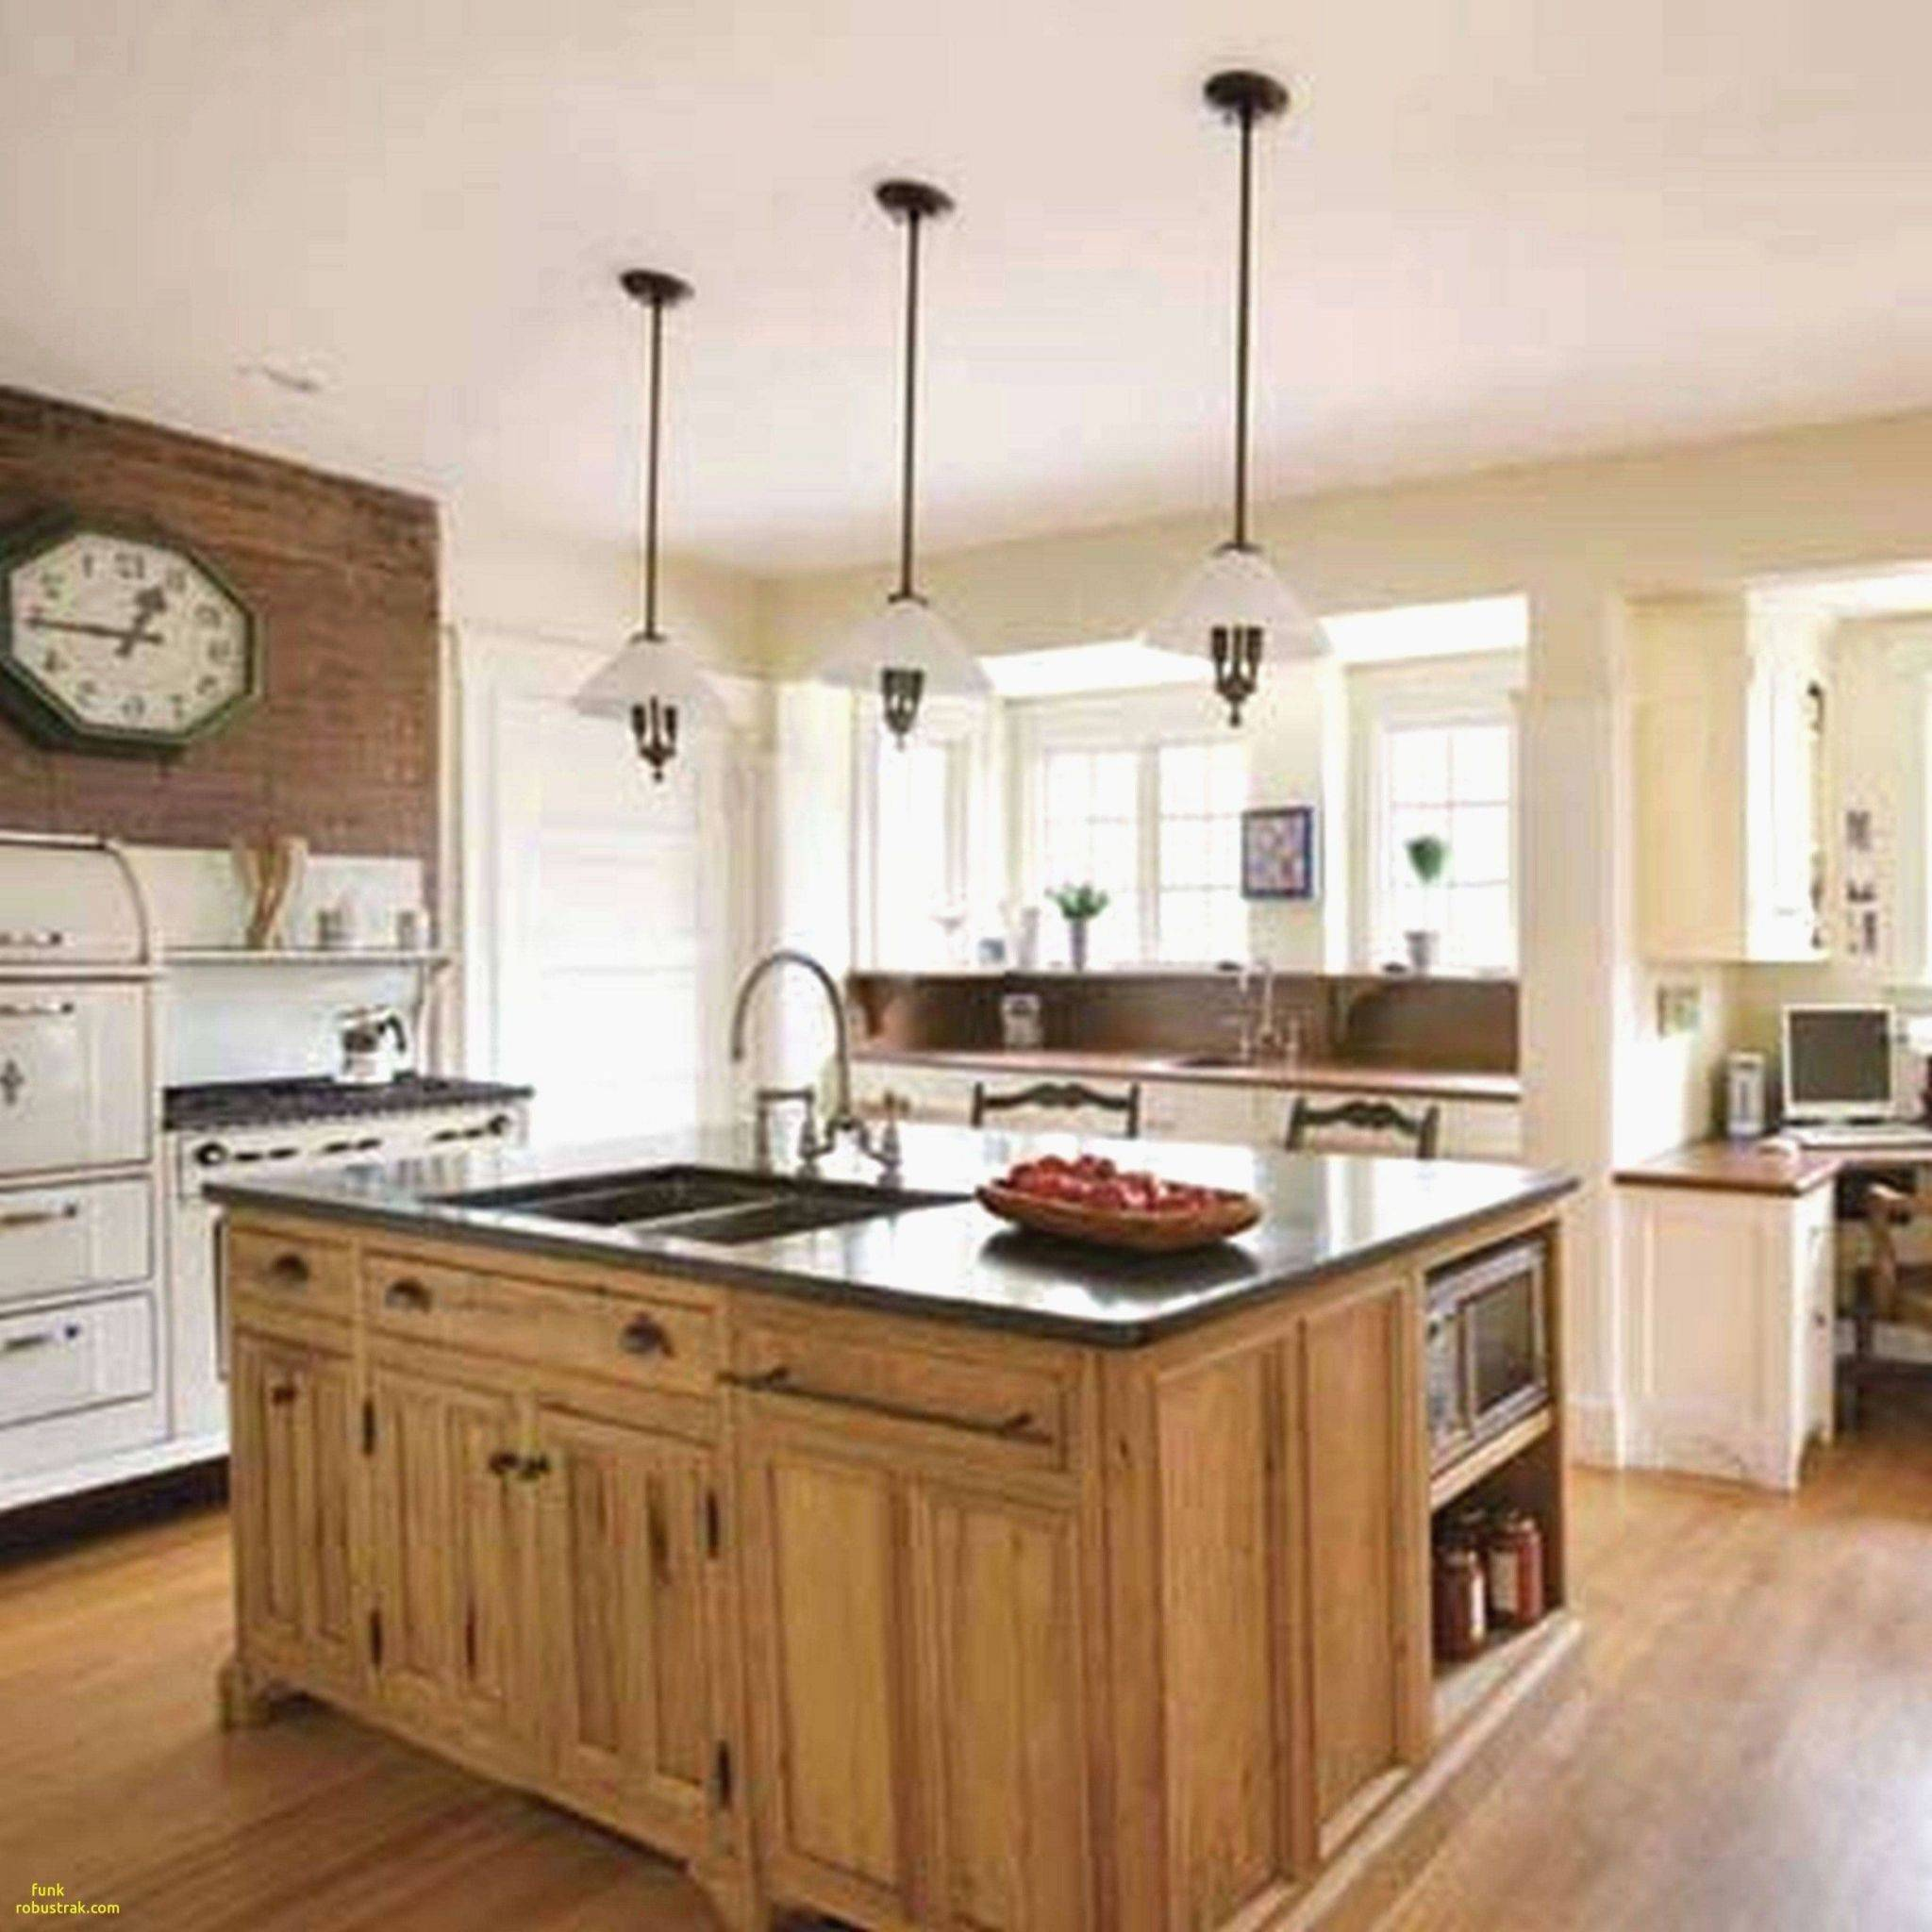 kitchen island design plans also 34 incredible narrow kitchen island ideas design of kitchen island design plans